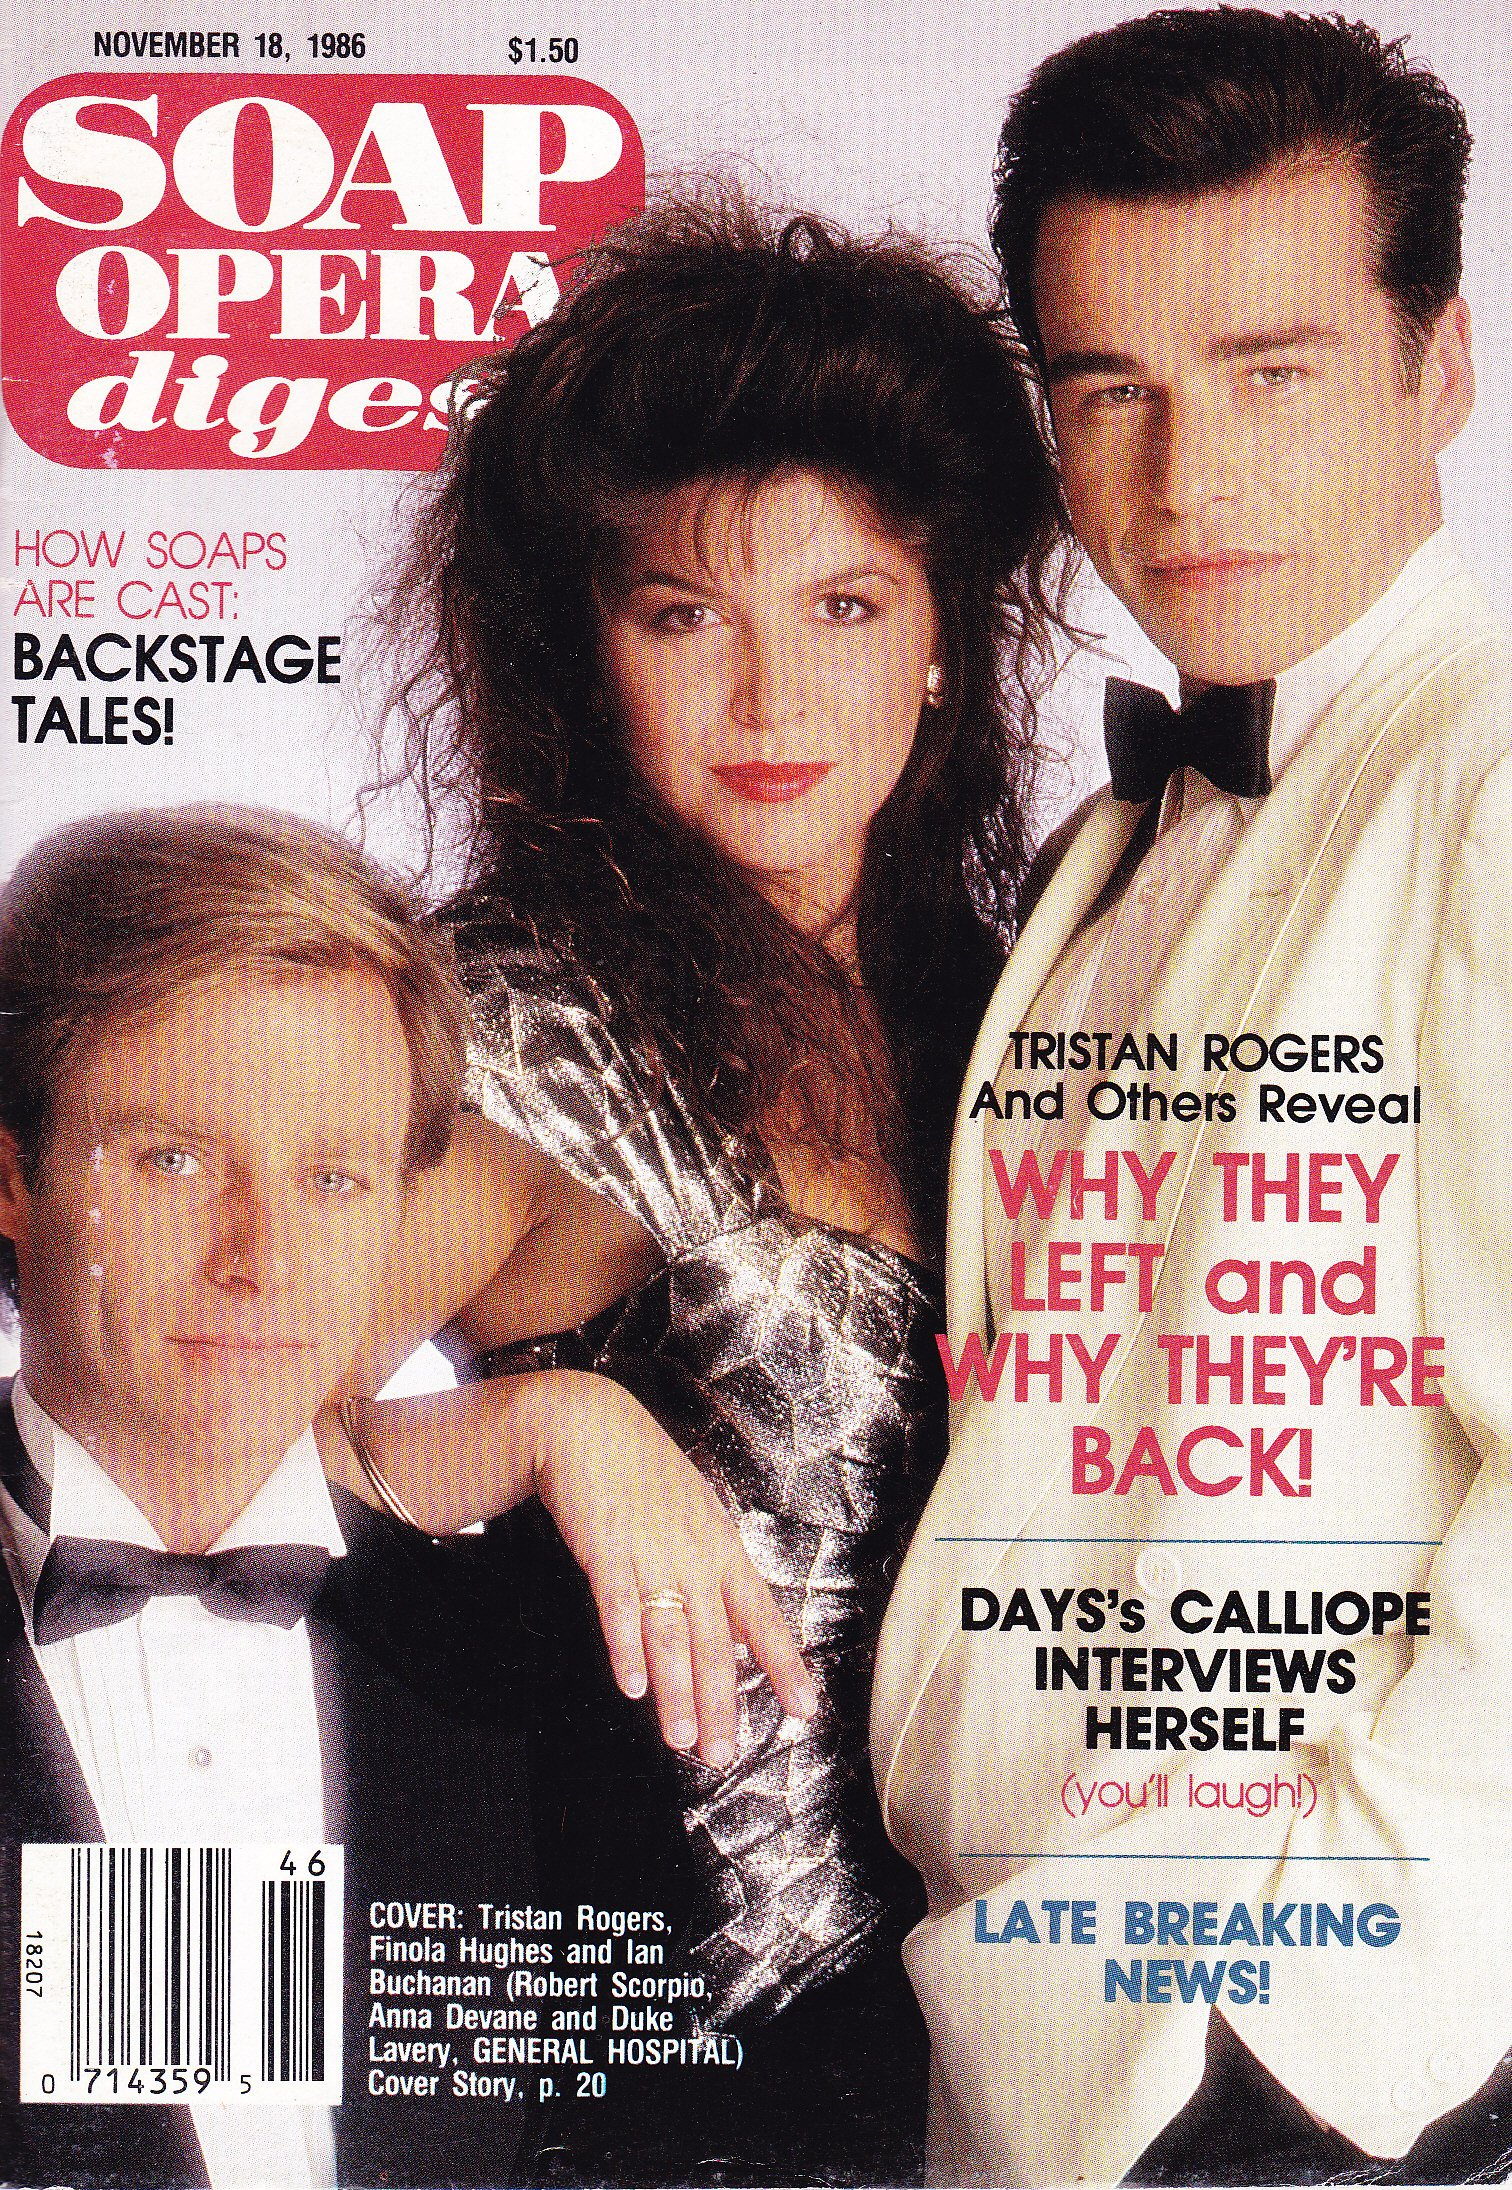 Tristan Rogers Finola Hughes And Ian Buchanan General Hospital Why They Left And Why They Re Back How Soaps Are Cast November 18 1986 Soap Opera Digest Magazine American Media Inc Amazon Com